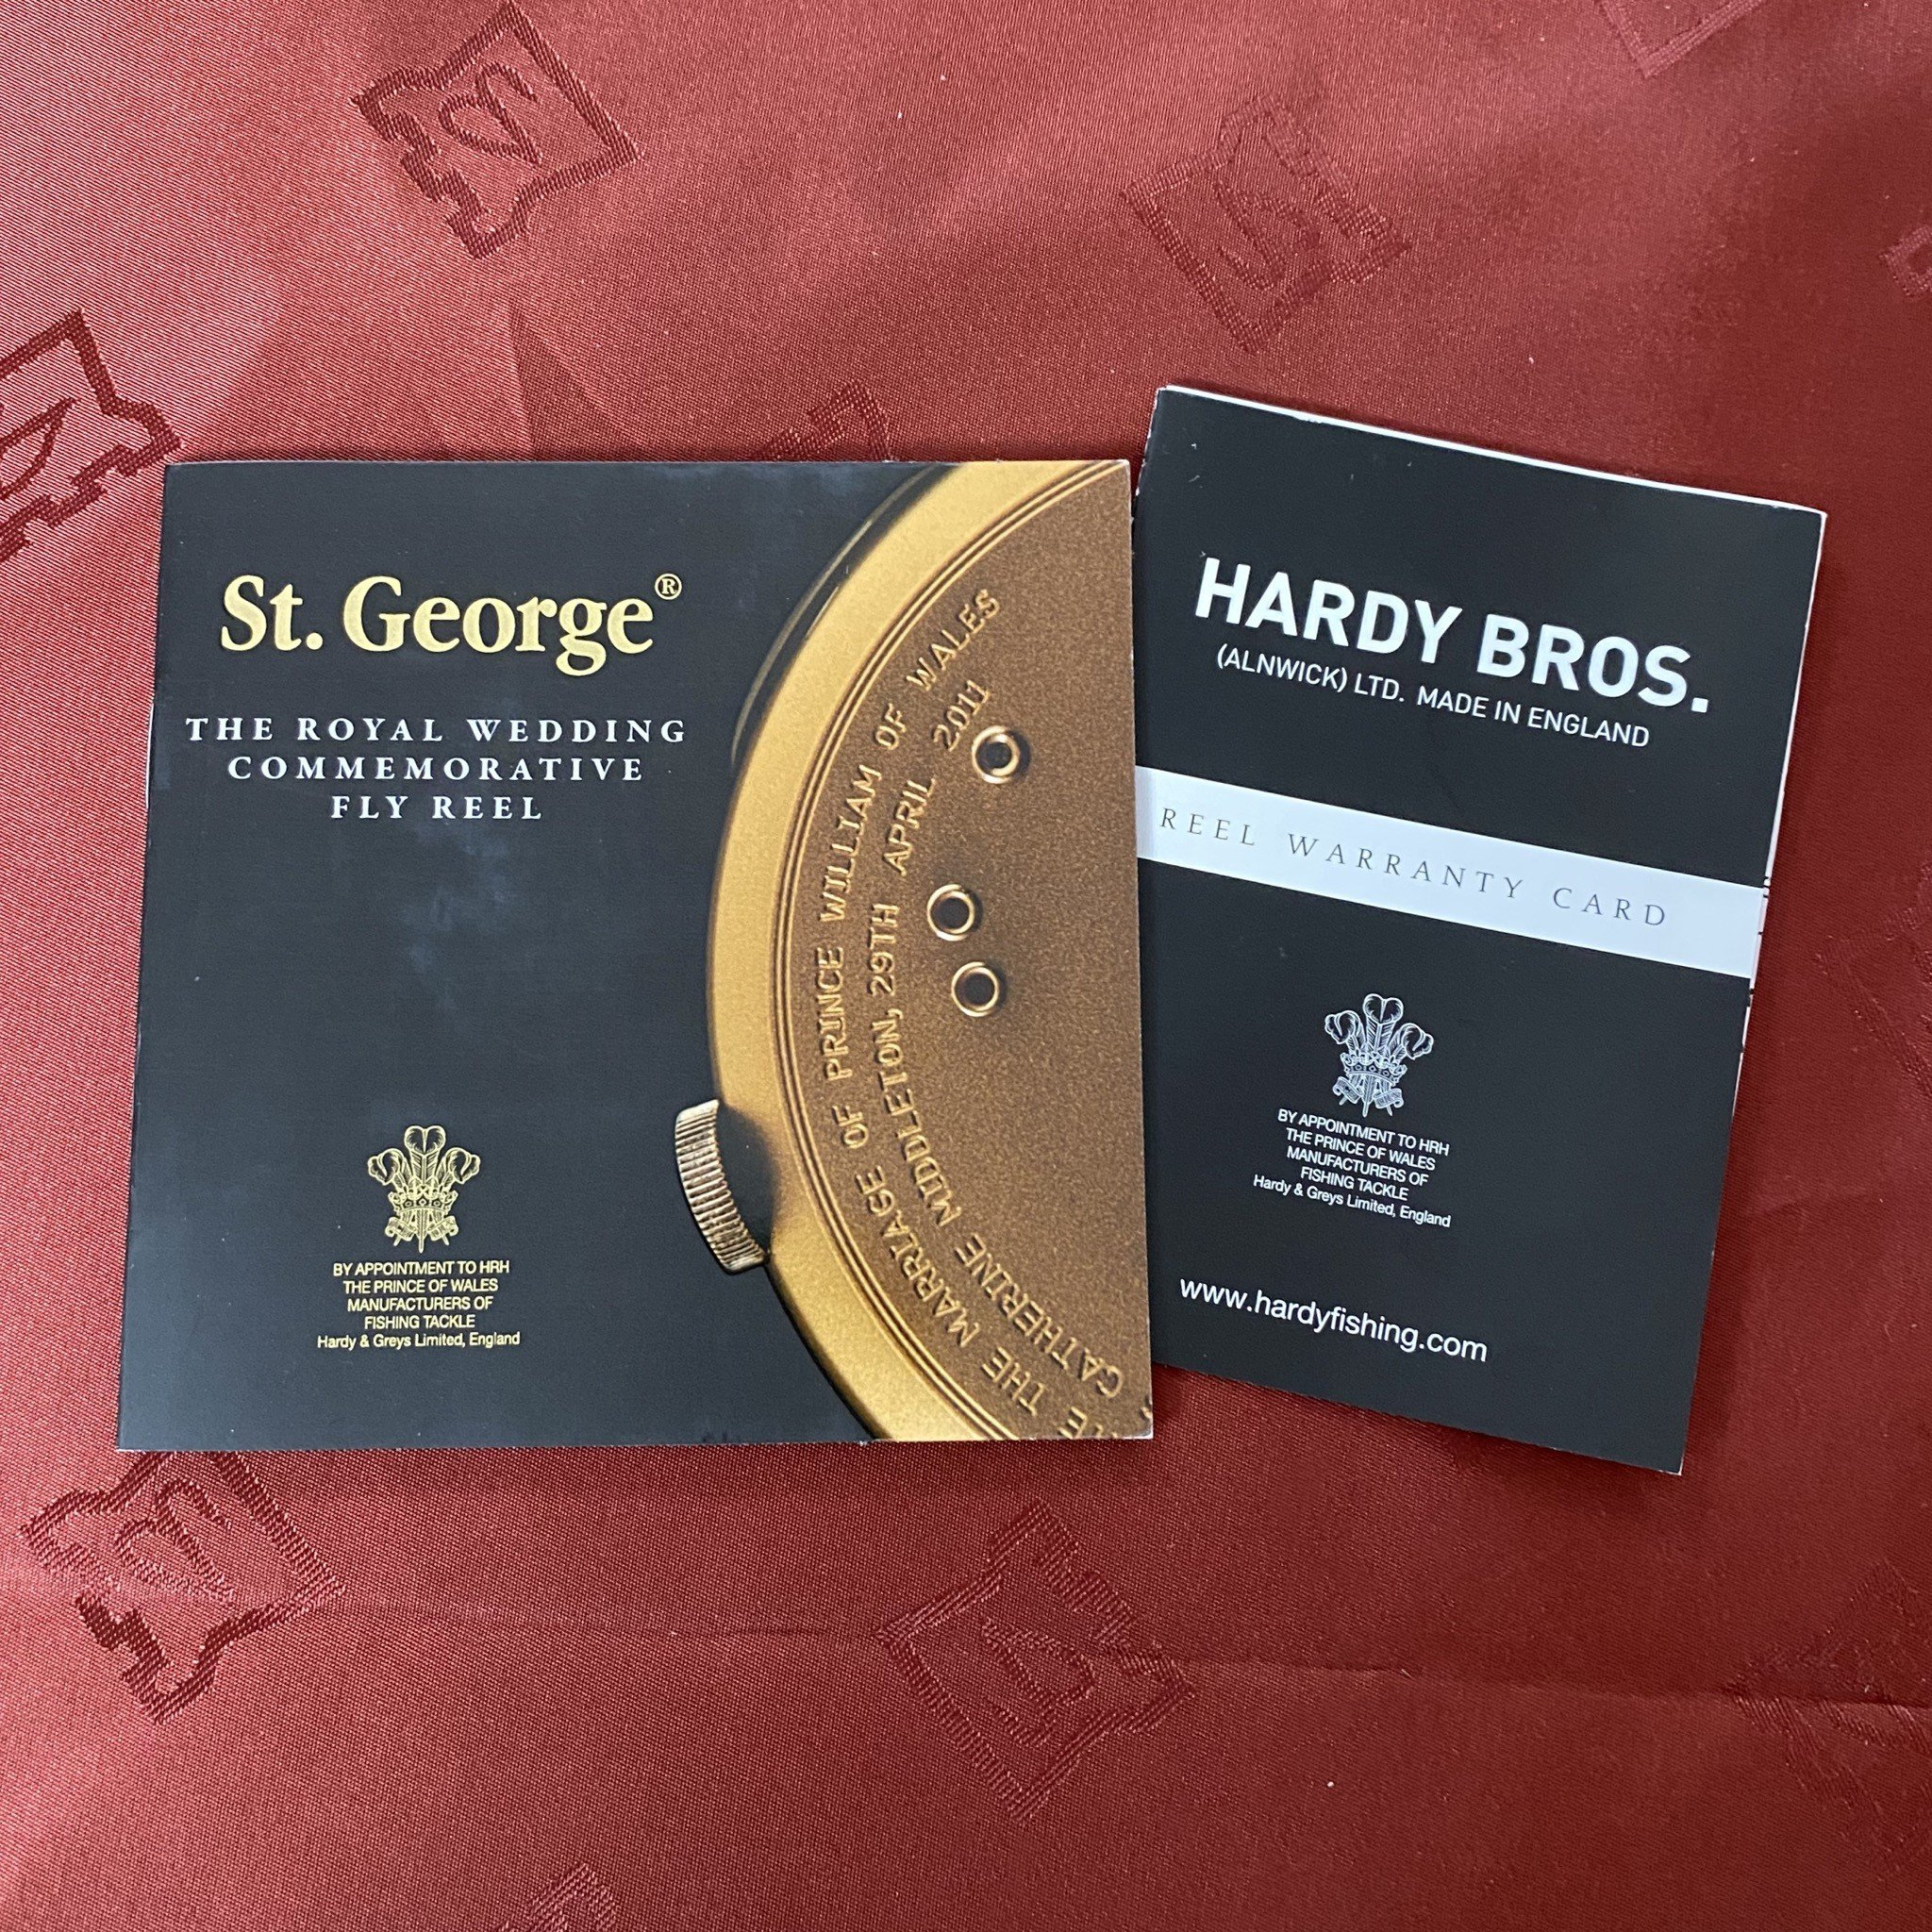 St. George The Royal Wedding Commemorative 3 inch Fly Reel MADE IN ENGLAND - LIMITED EDITION image 9